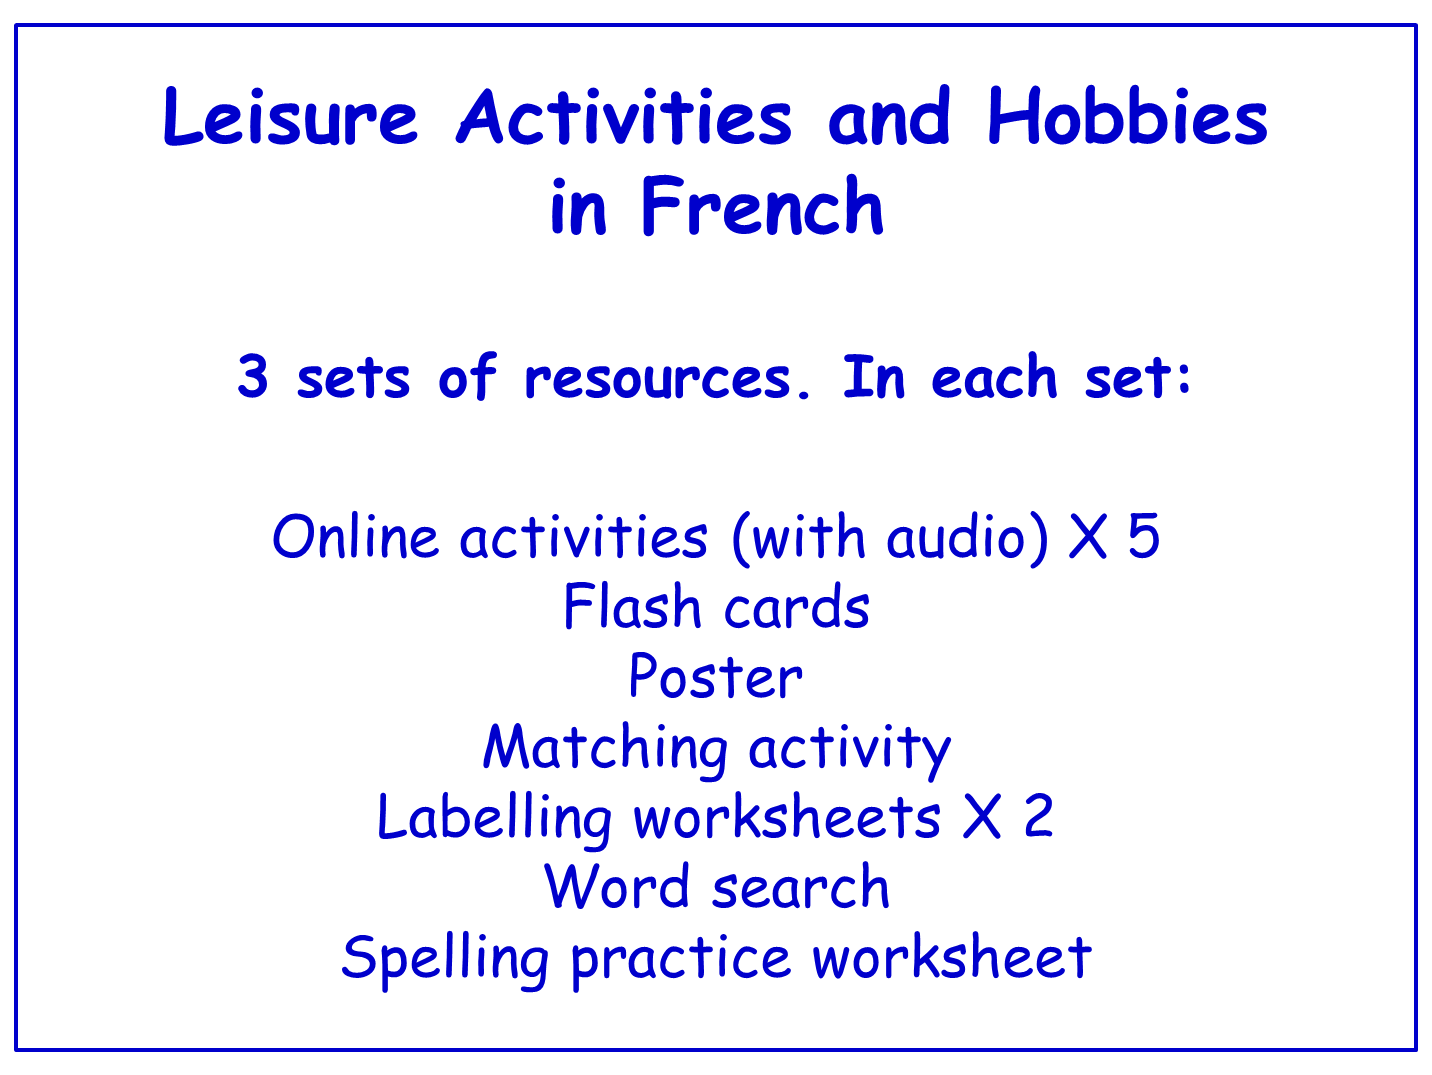 Leisure Activities and Hobbies in French  Worksheets, Games, Activities and Flash Cards (with audio) Bundle (3 sets)